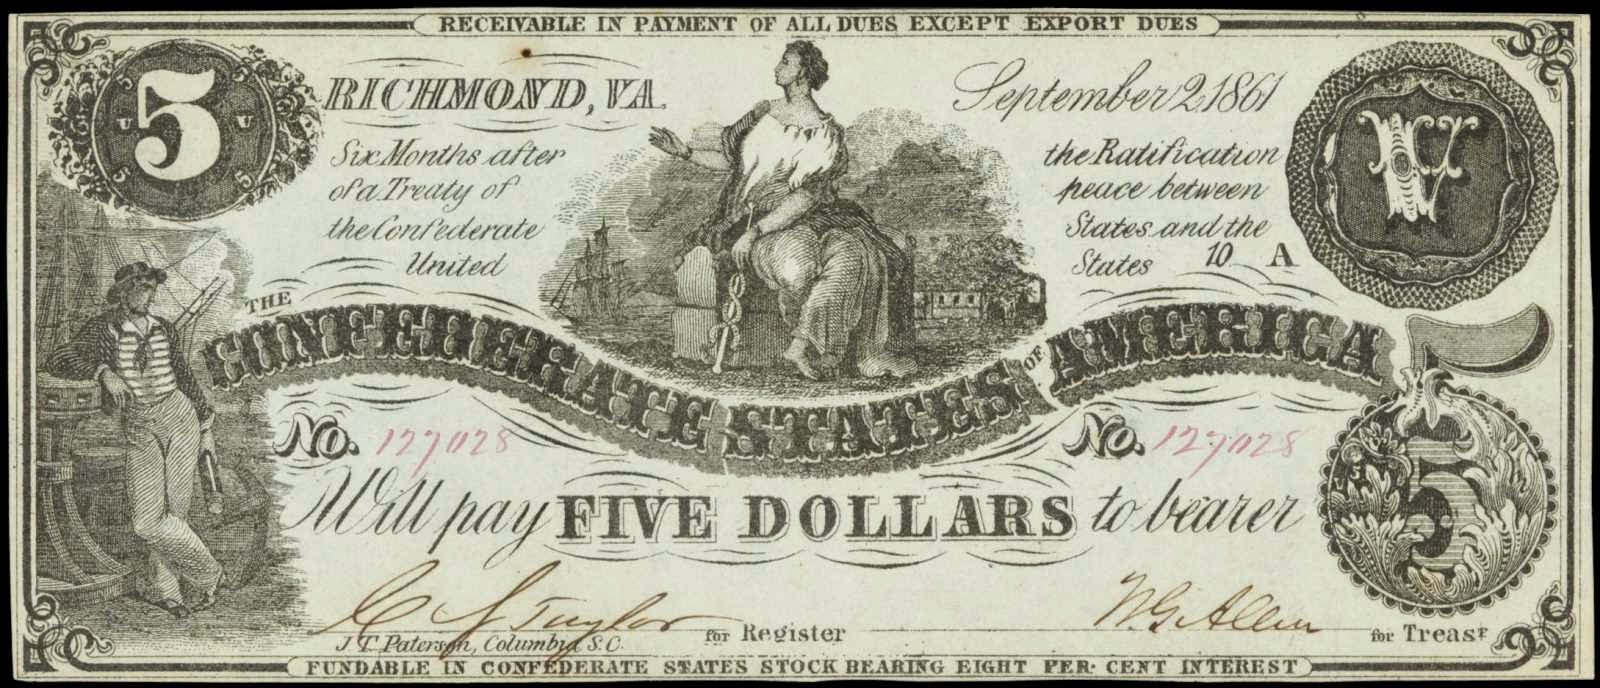 5 Dollar Bill Confederate States of America Currency 1861